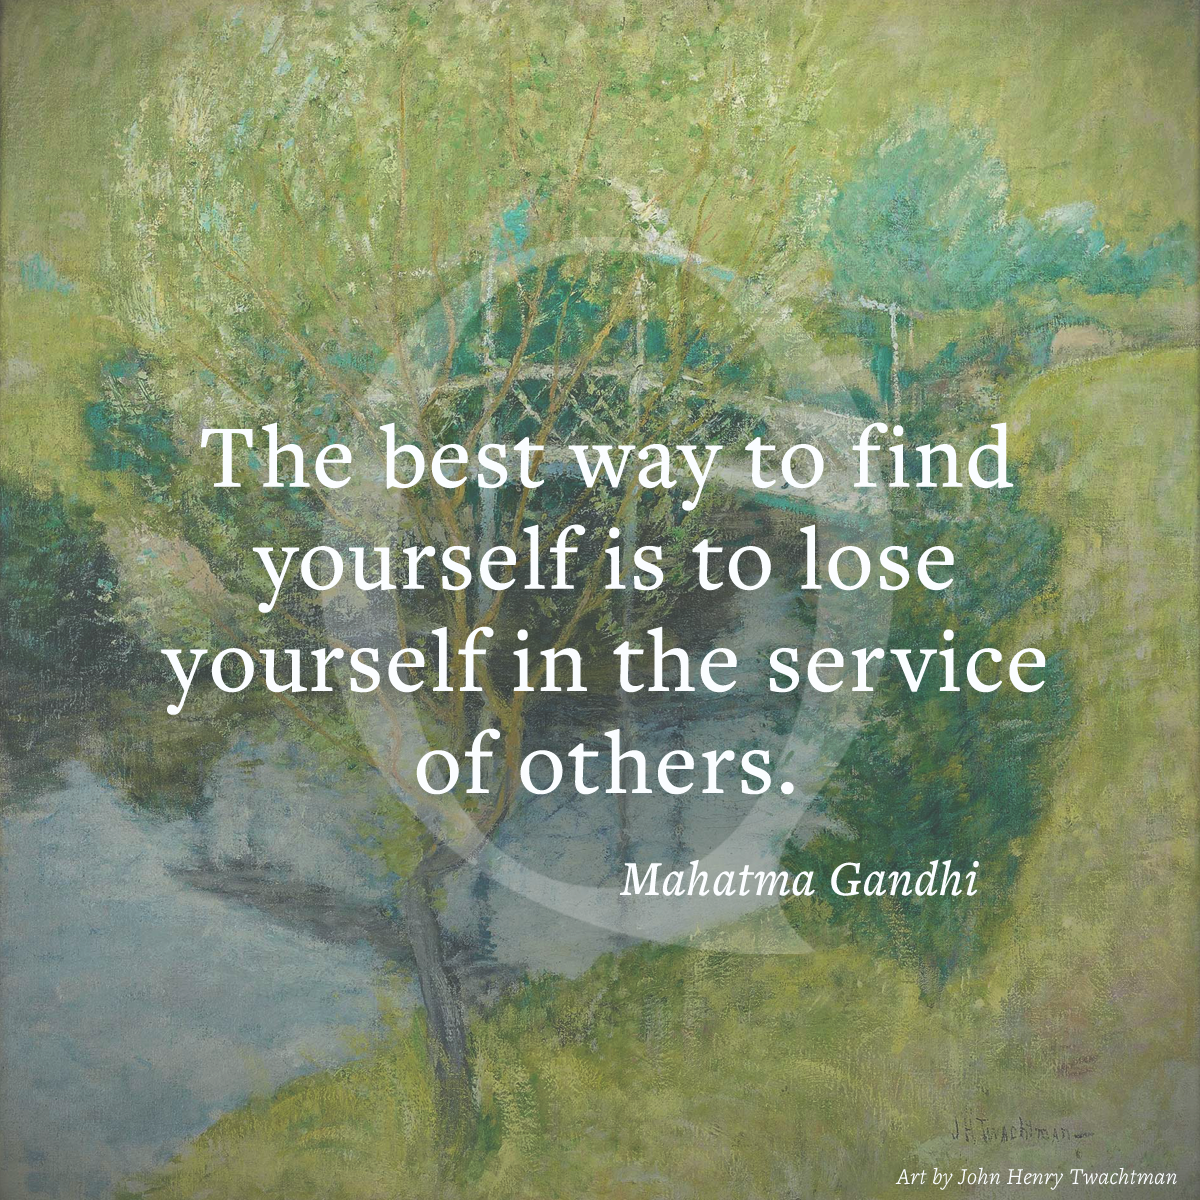 Quotes About Helping Others Your Best Self And Motivation May Appear When You Focus Your .